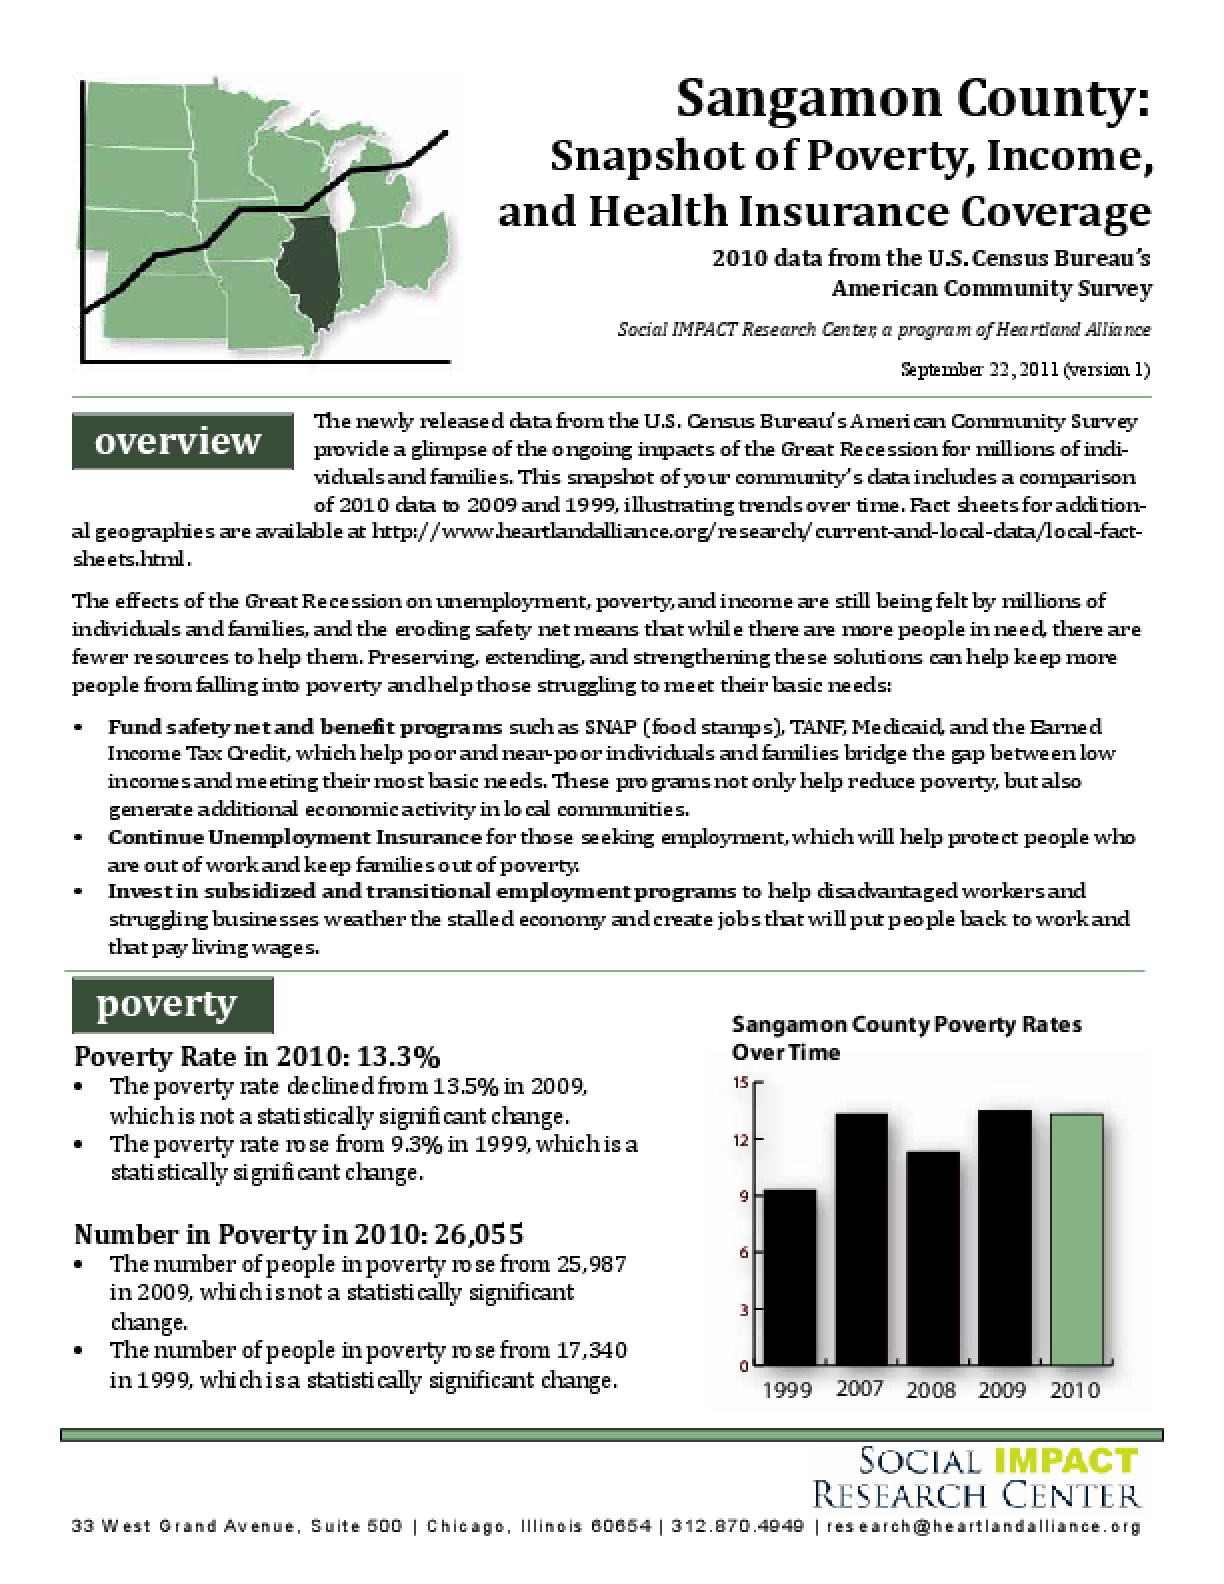 Sangamon County: Snapshot of Poverty, Income, and Health Insurance Coverage